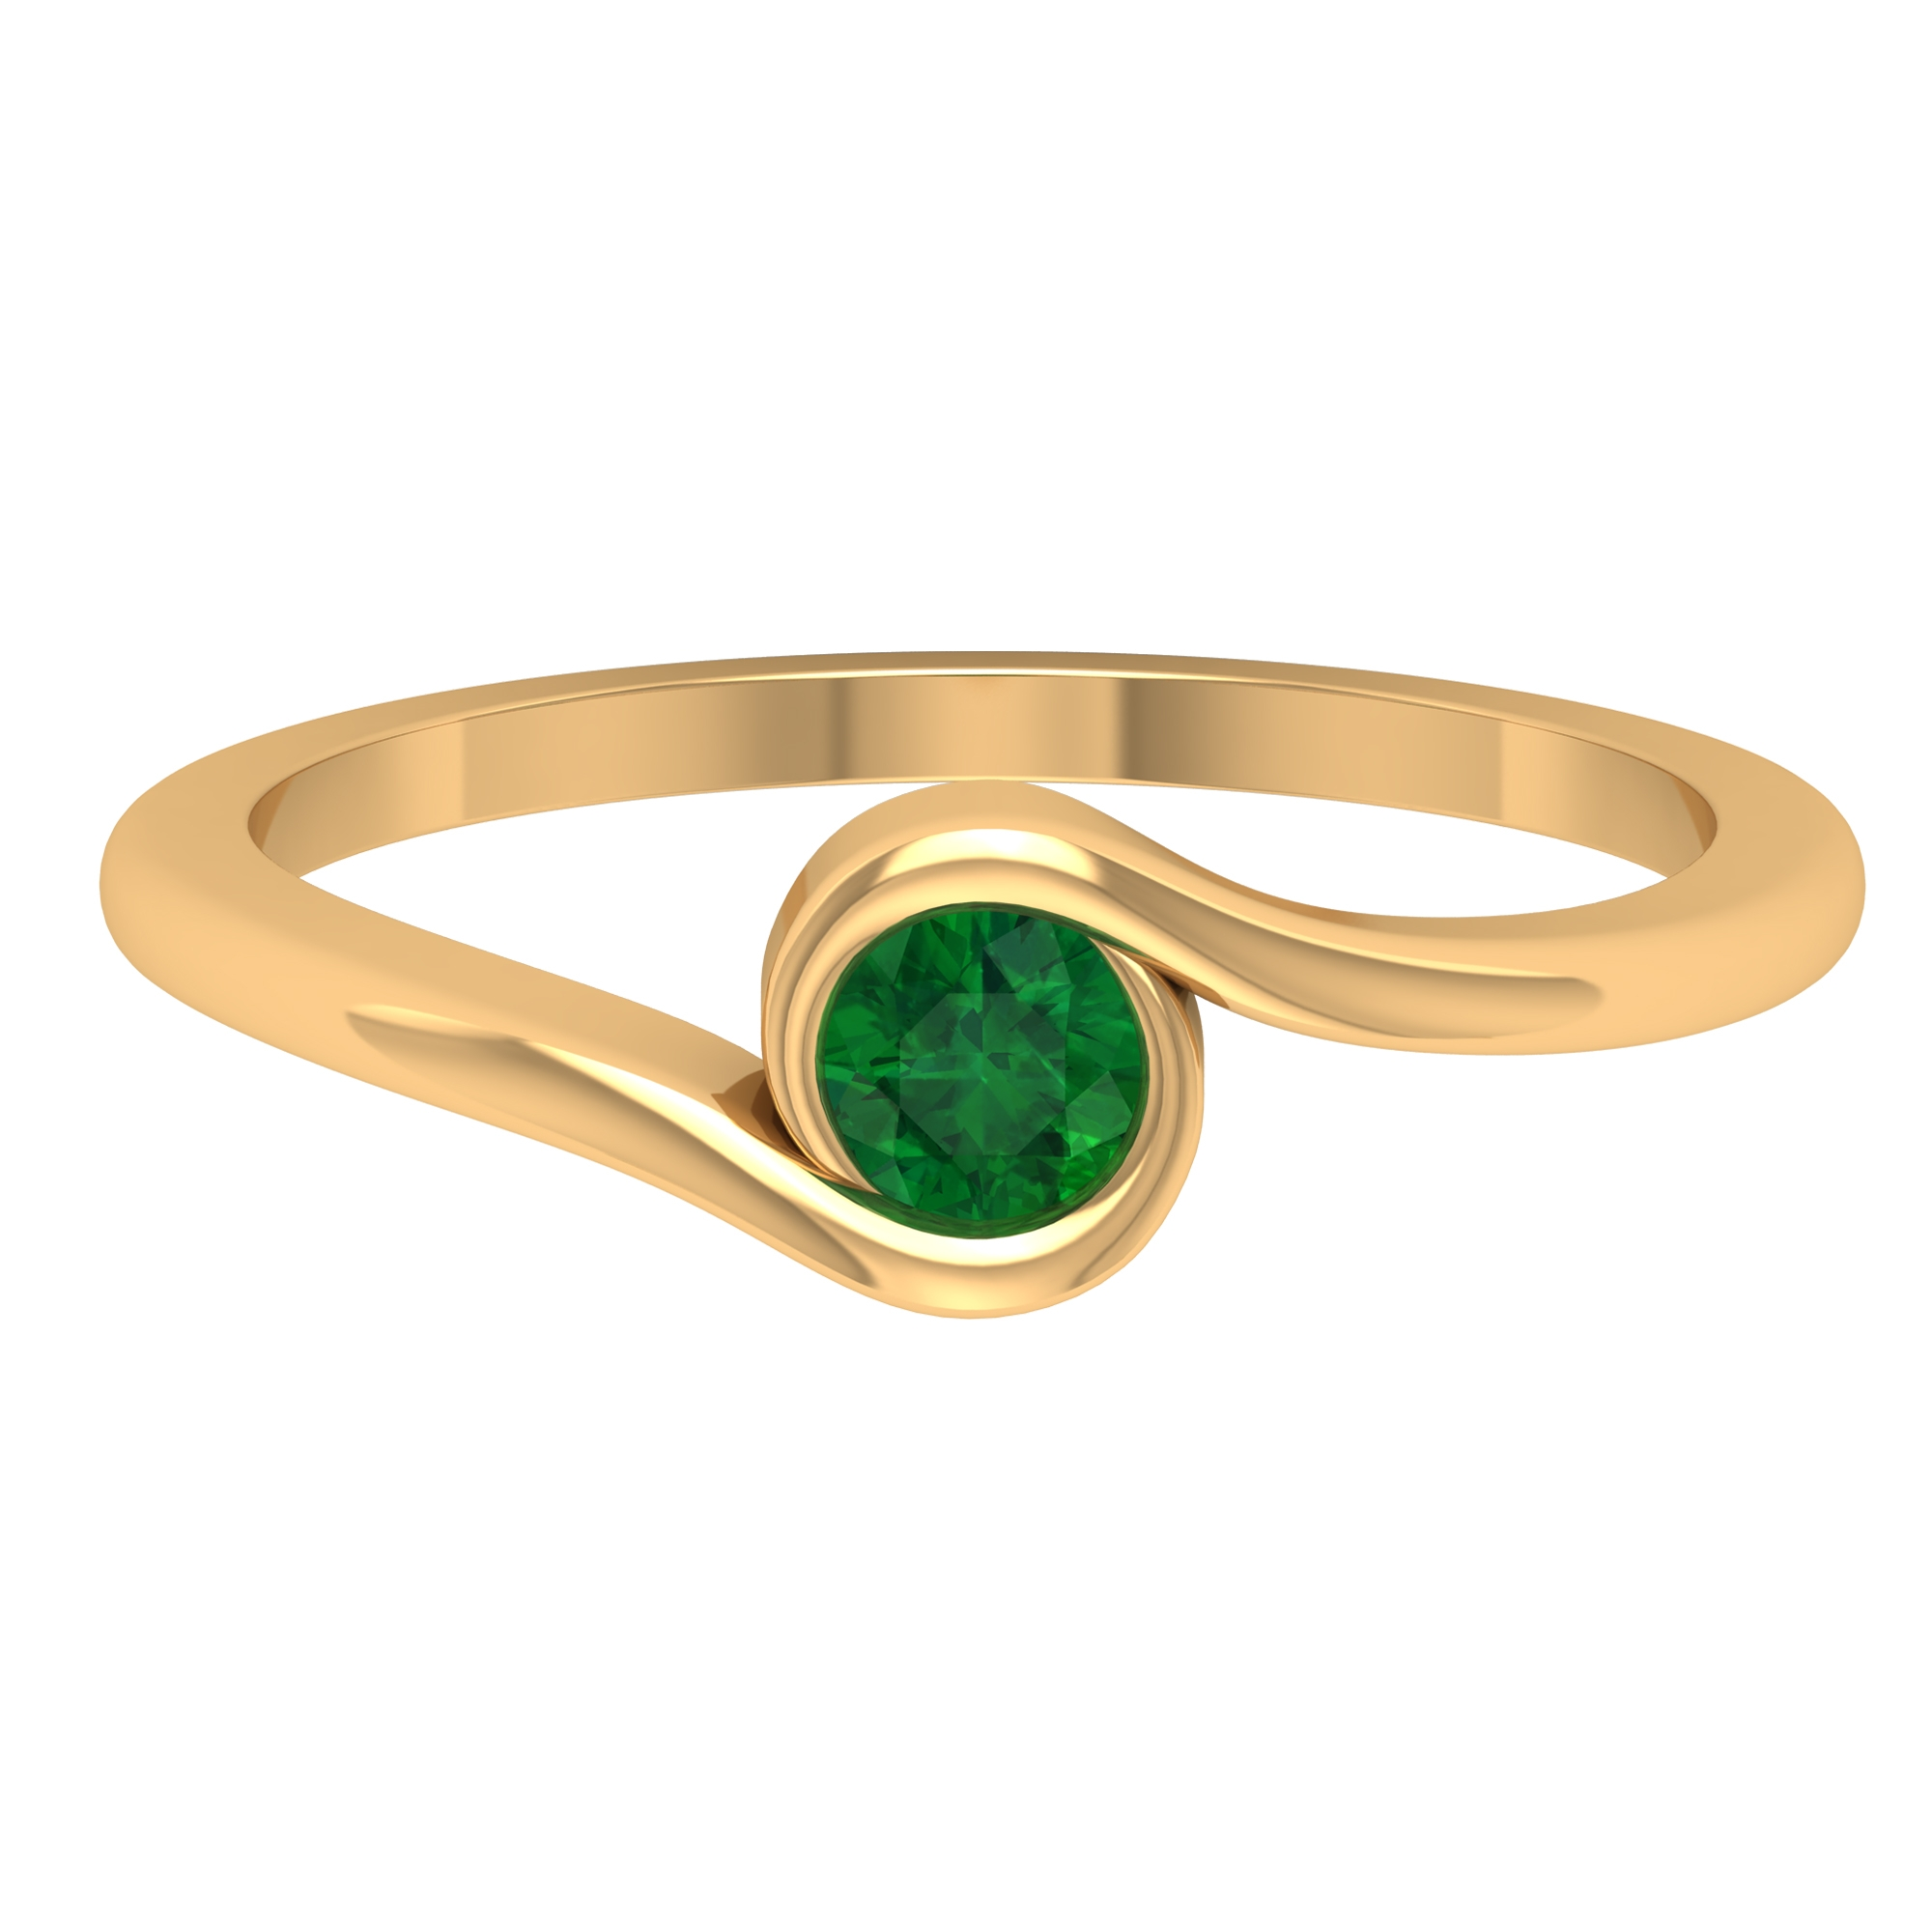 May Birthstone 4 MM Emerald Solitaire Ring in Bezel Setting with Bypass Shank